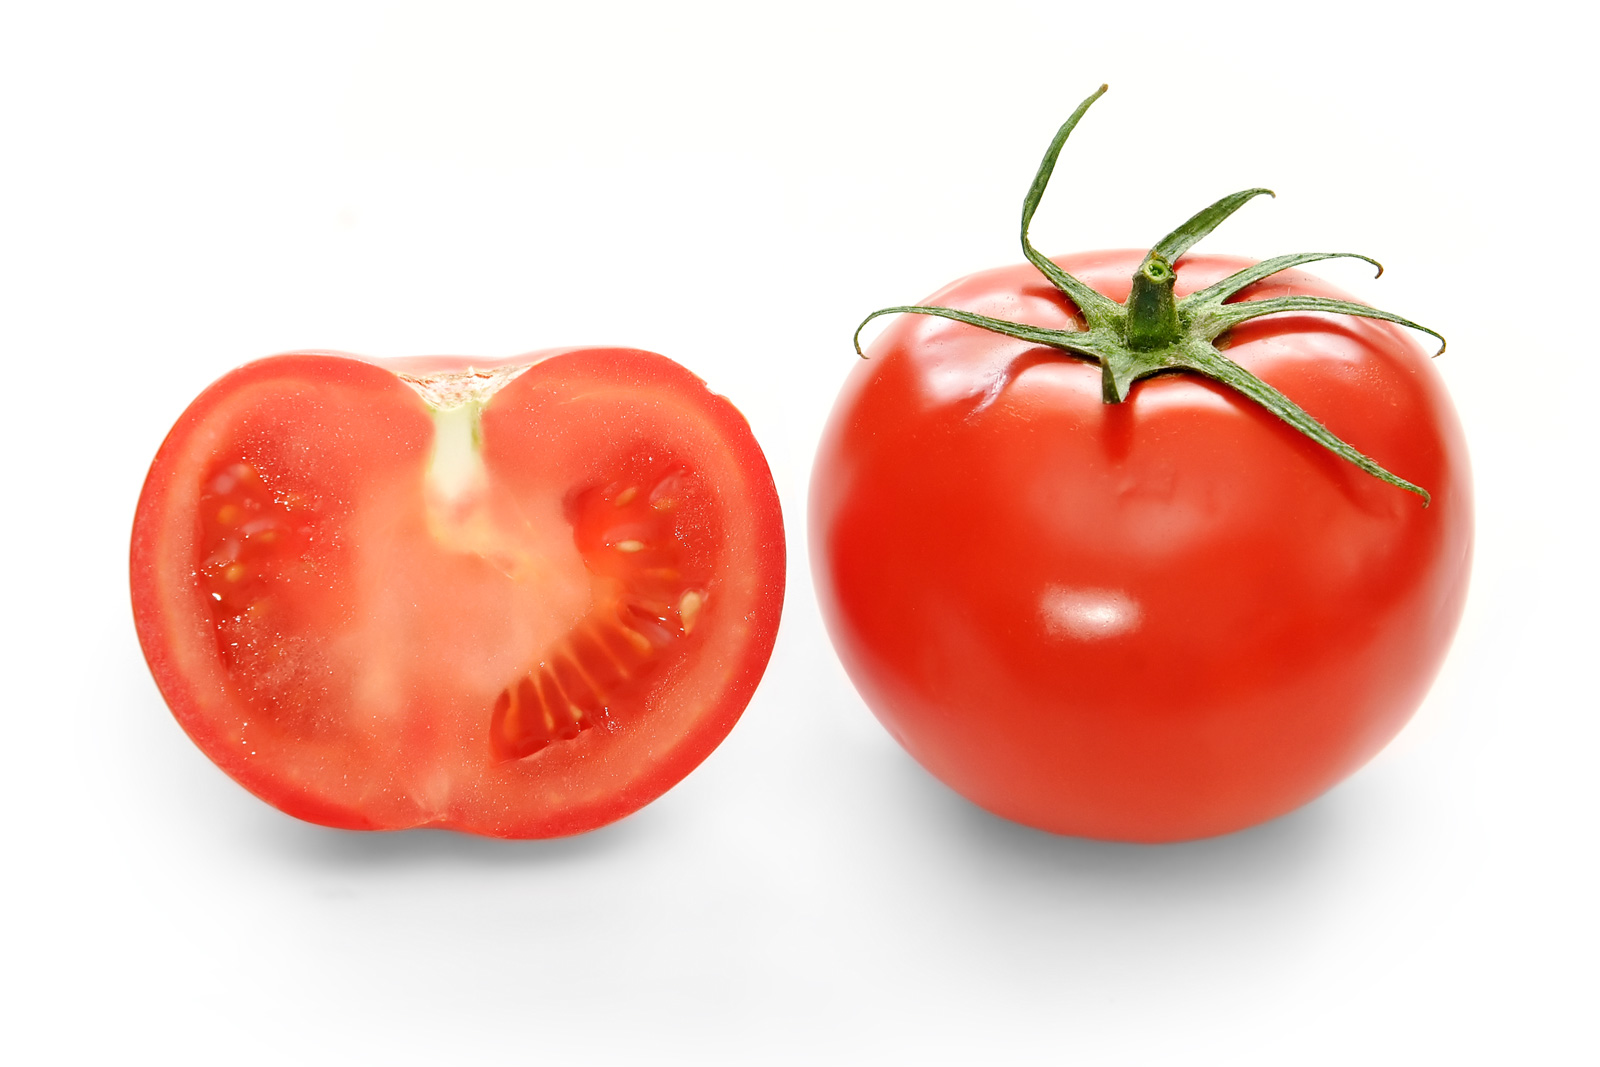 The Other Night My Father In Law Mentioned That Chinese A Tomato Is Fān Qié Which Means Foreign Eggplant Finding This Very Interesting